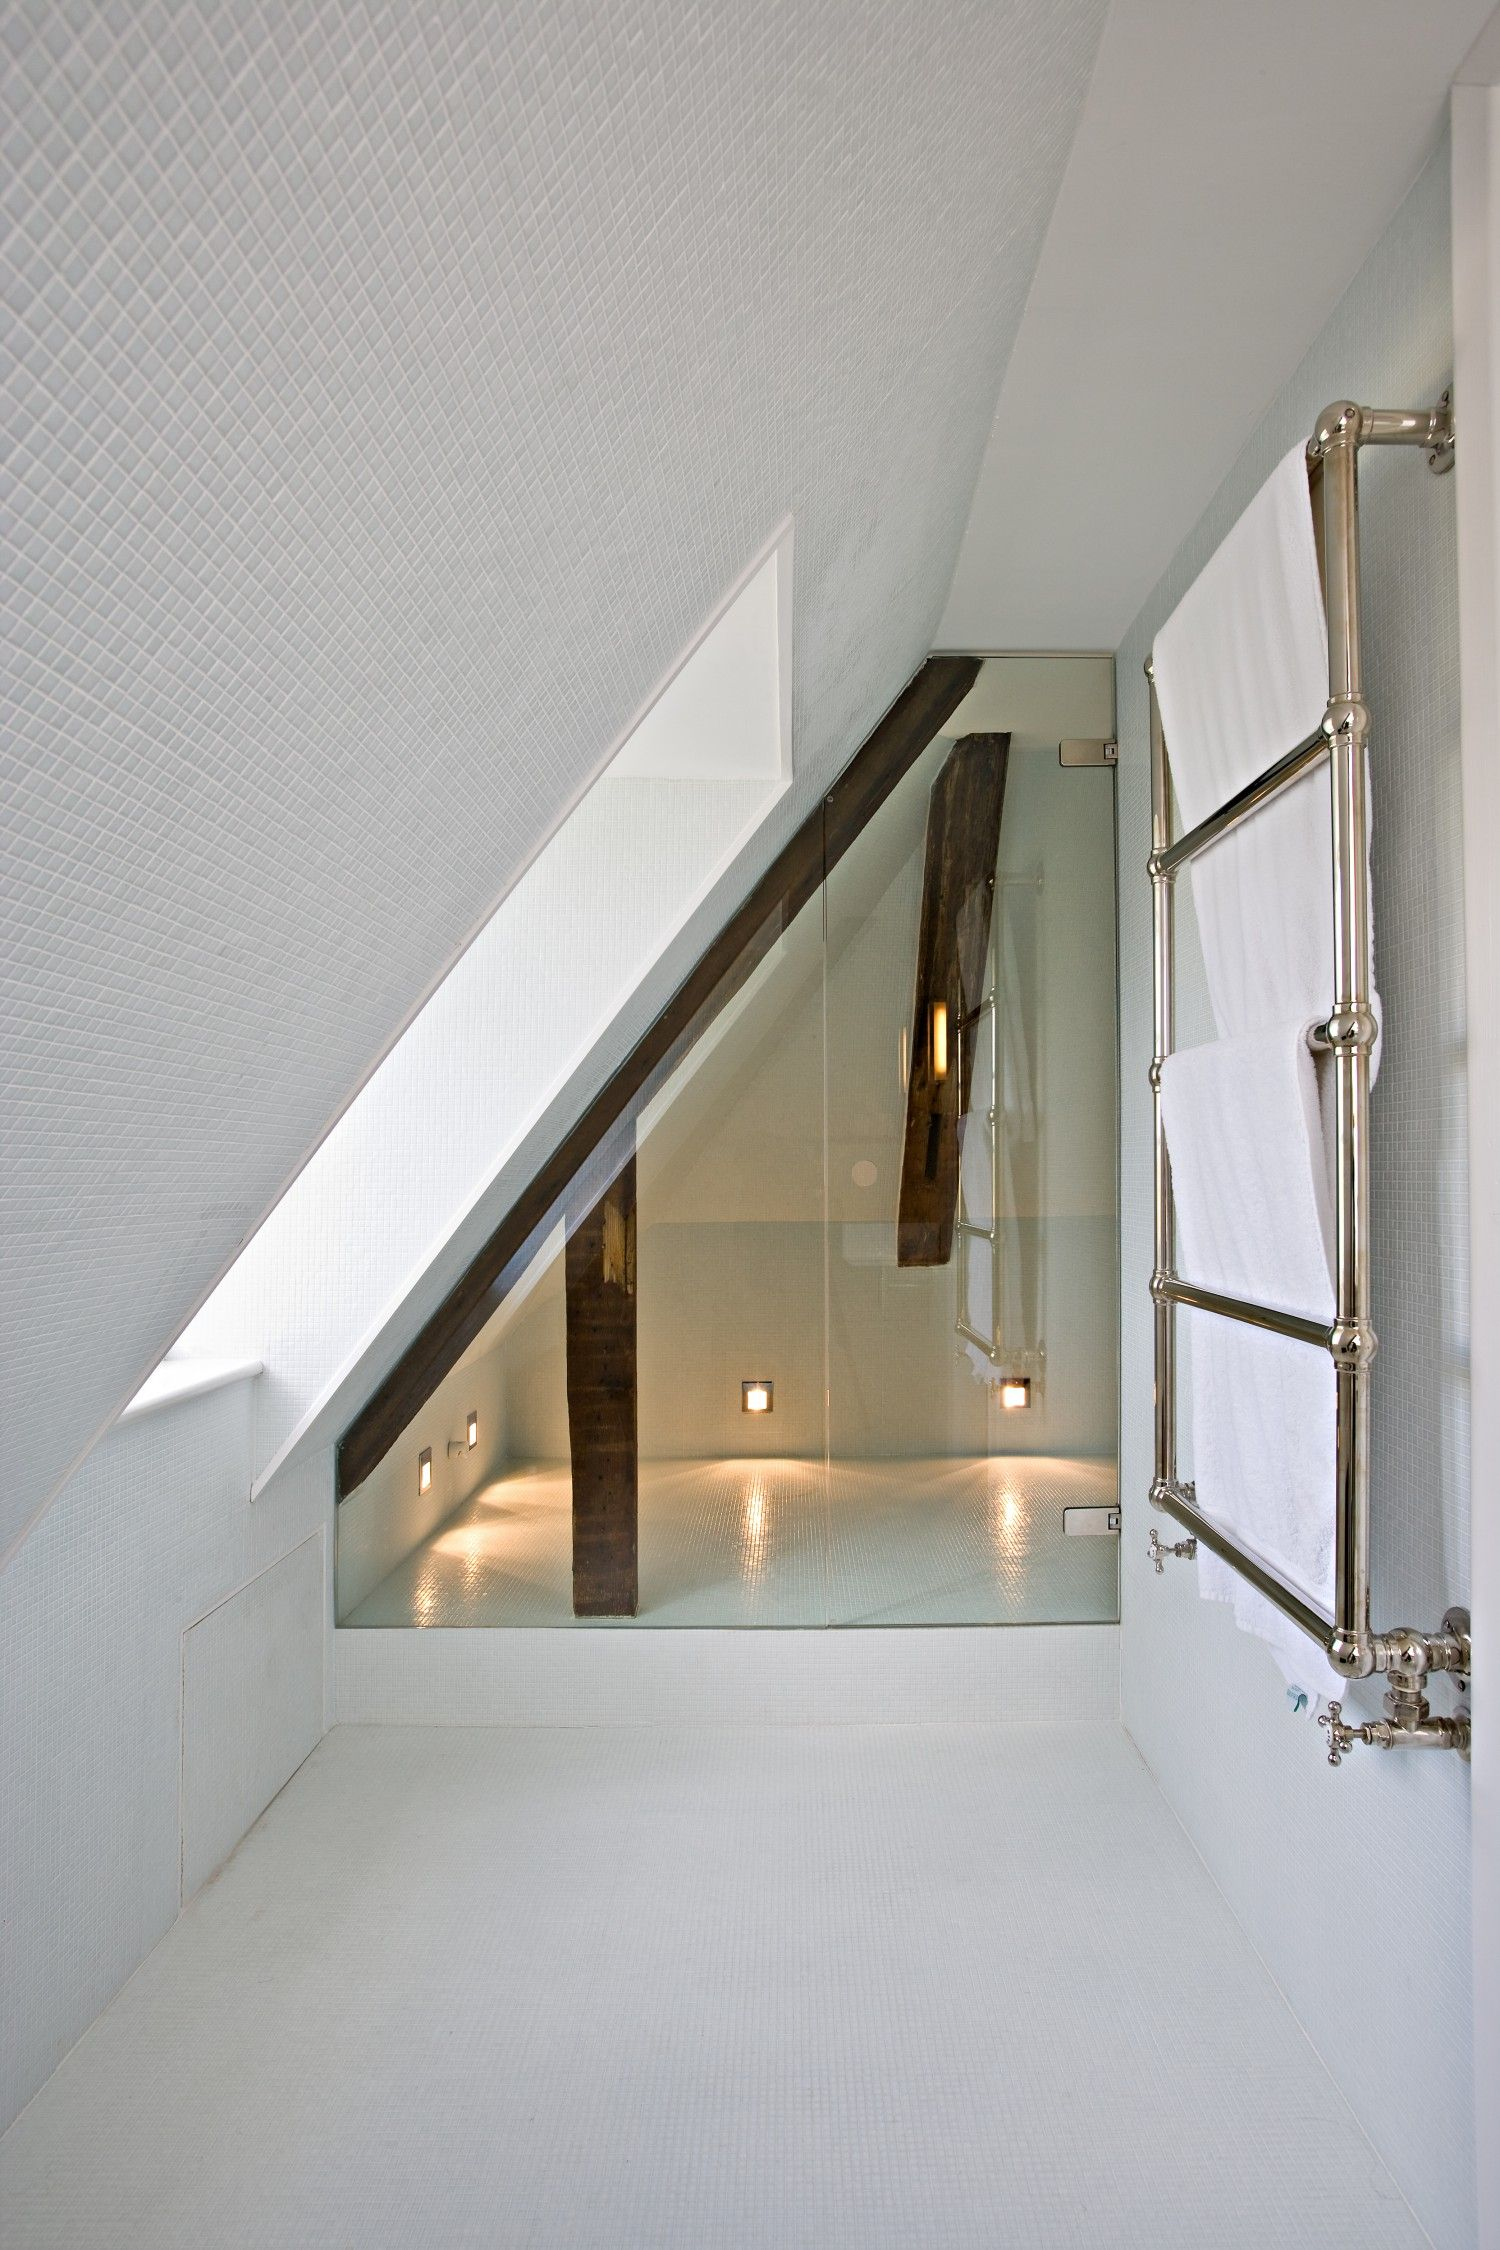 Chambre 10M2 Sous Comble glass shower sceen, slanted for attic ceiling | idée salle